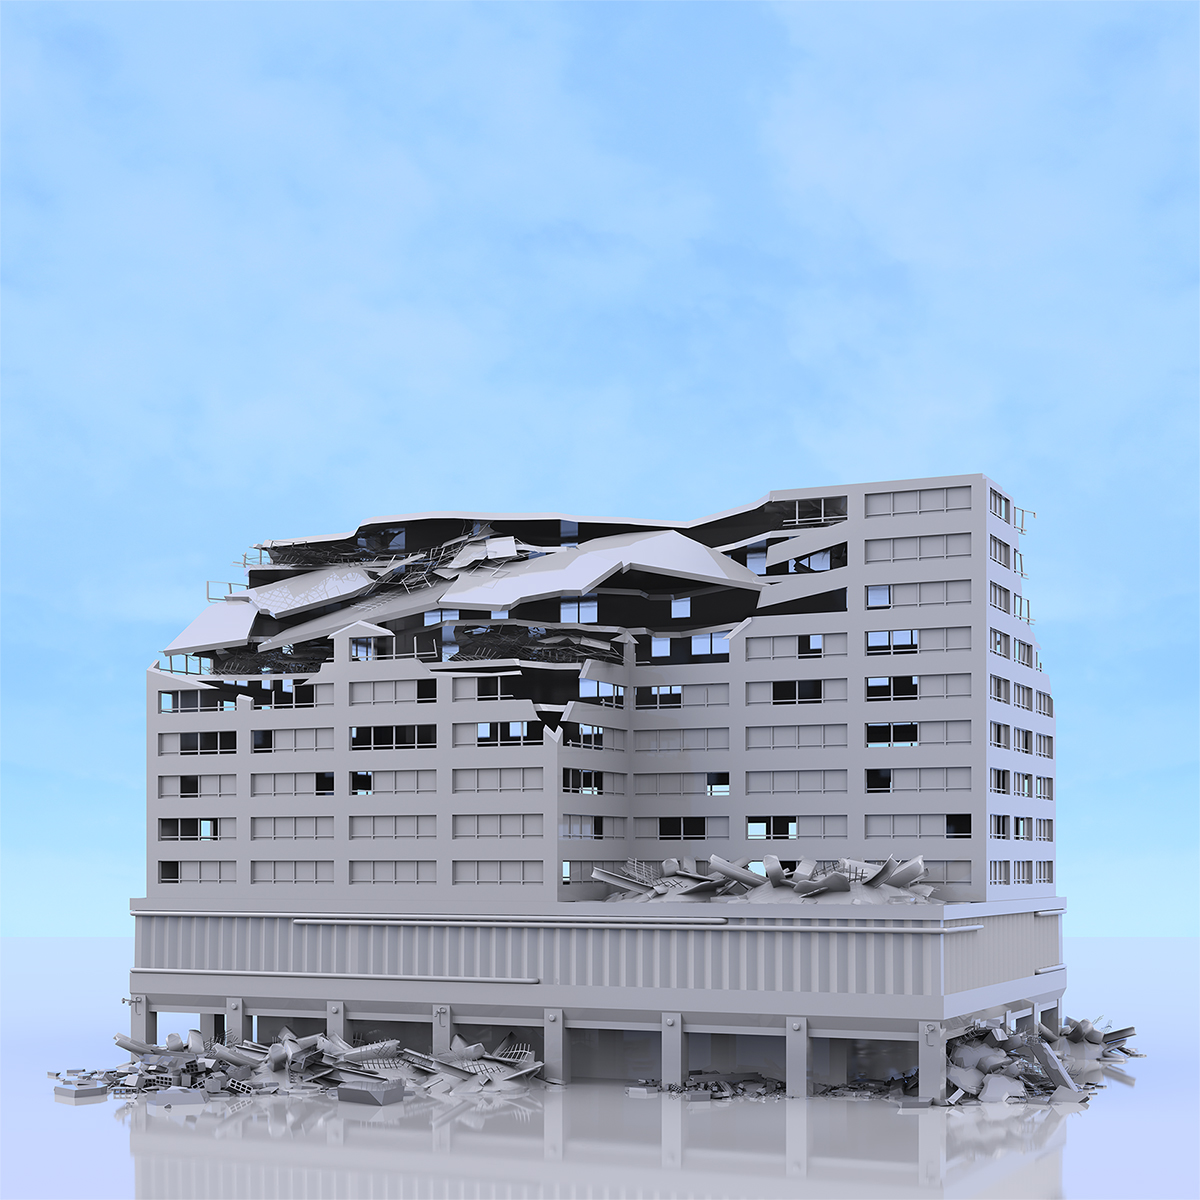 This was HomoSapiens War Affected Buildings 009 1 - 2019 - This was HomoSapiens. War-Affected Buildings